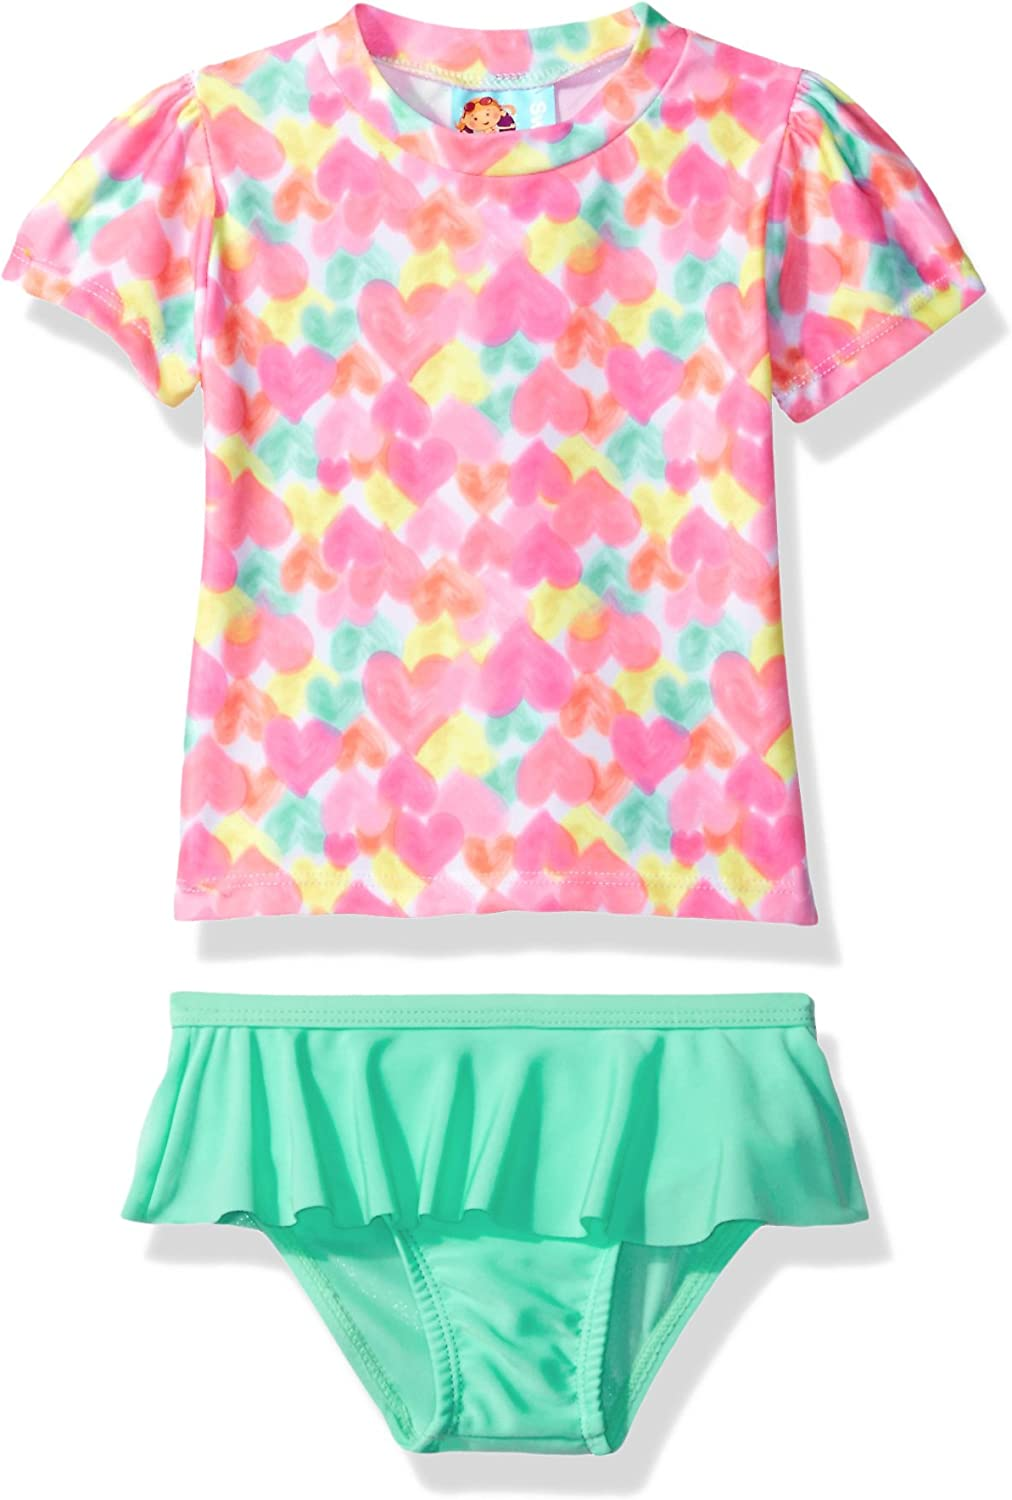 Baby Buns Girls Heart Print Swim Set Rashguard